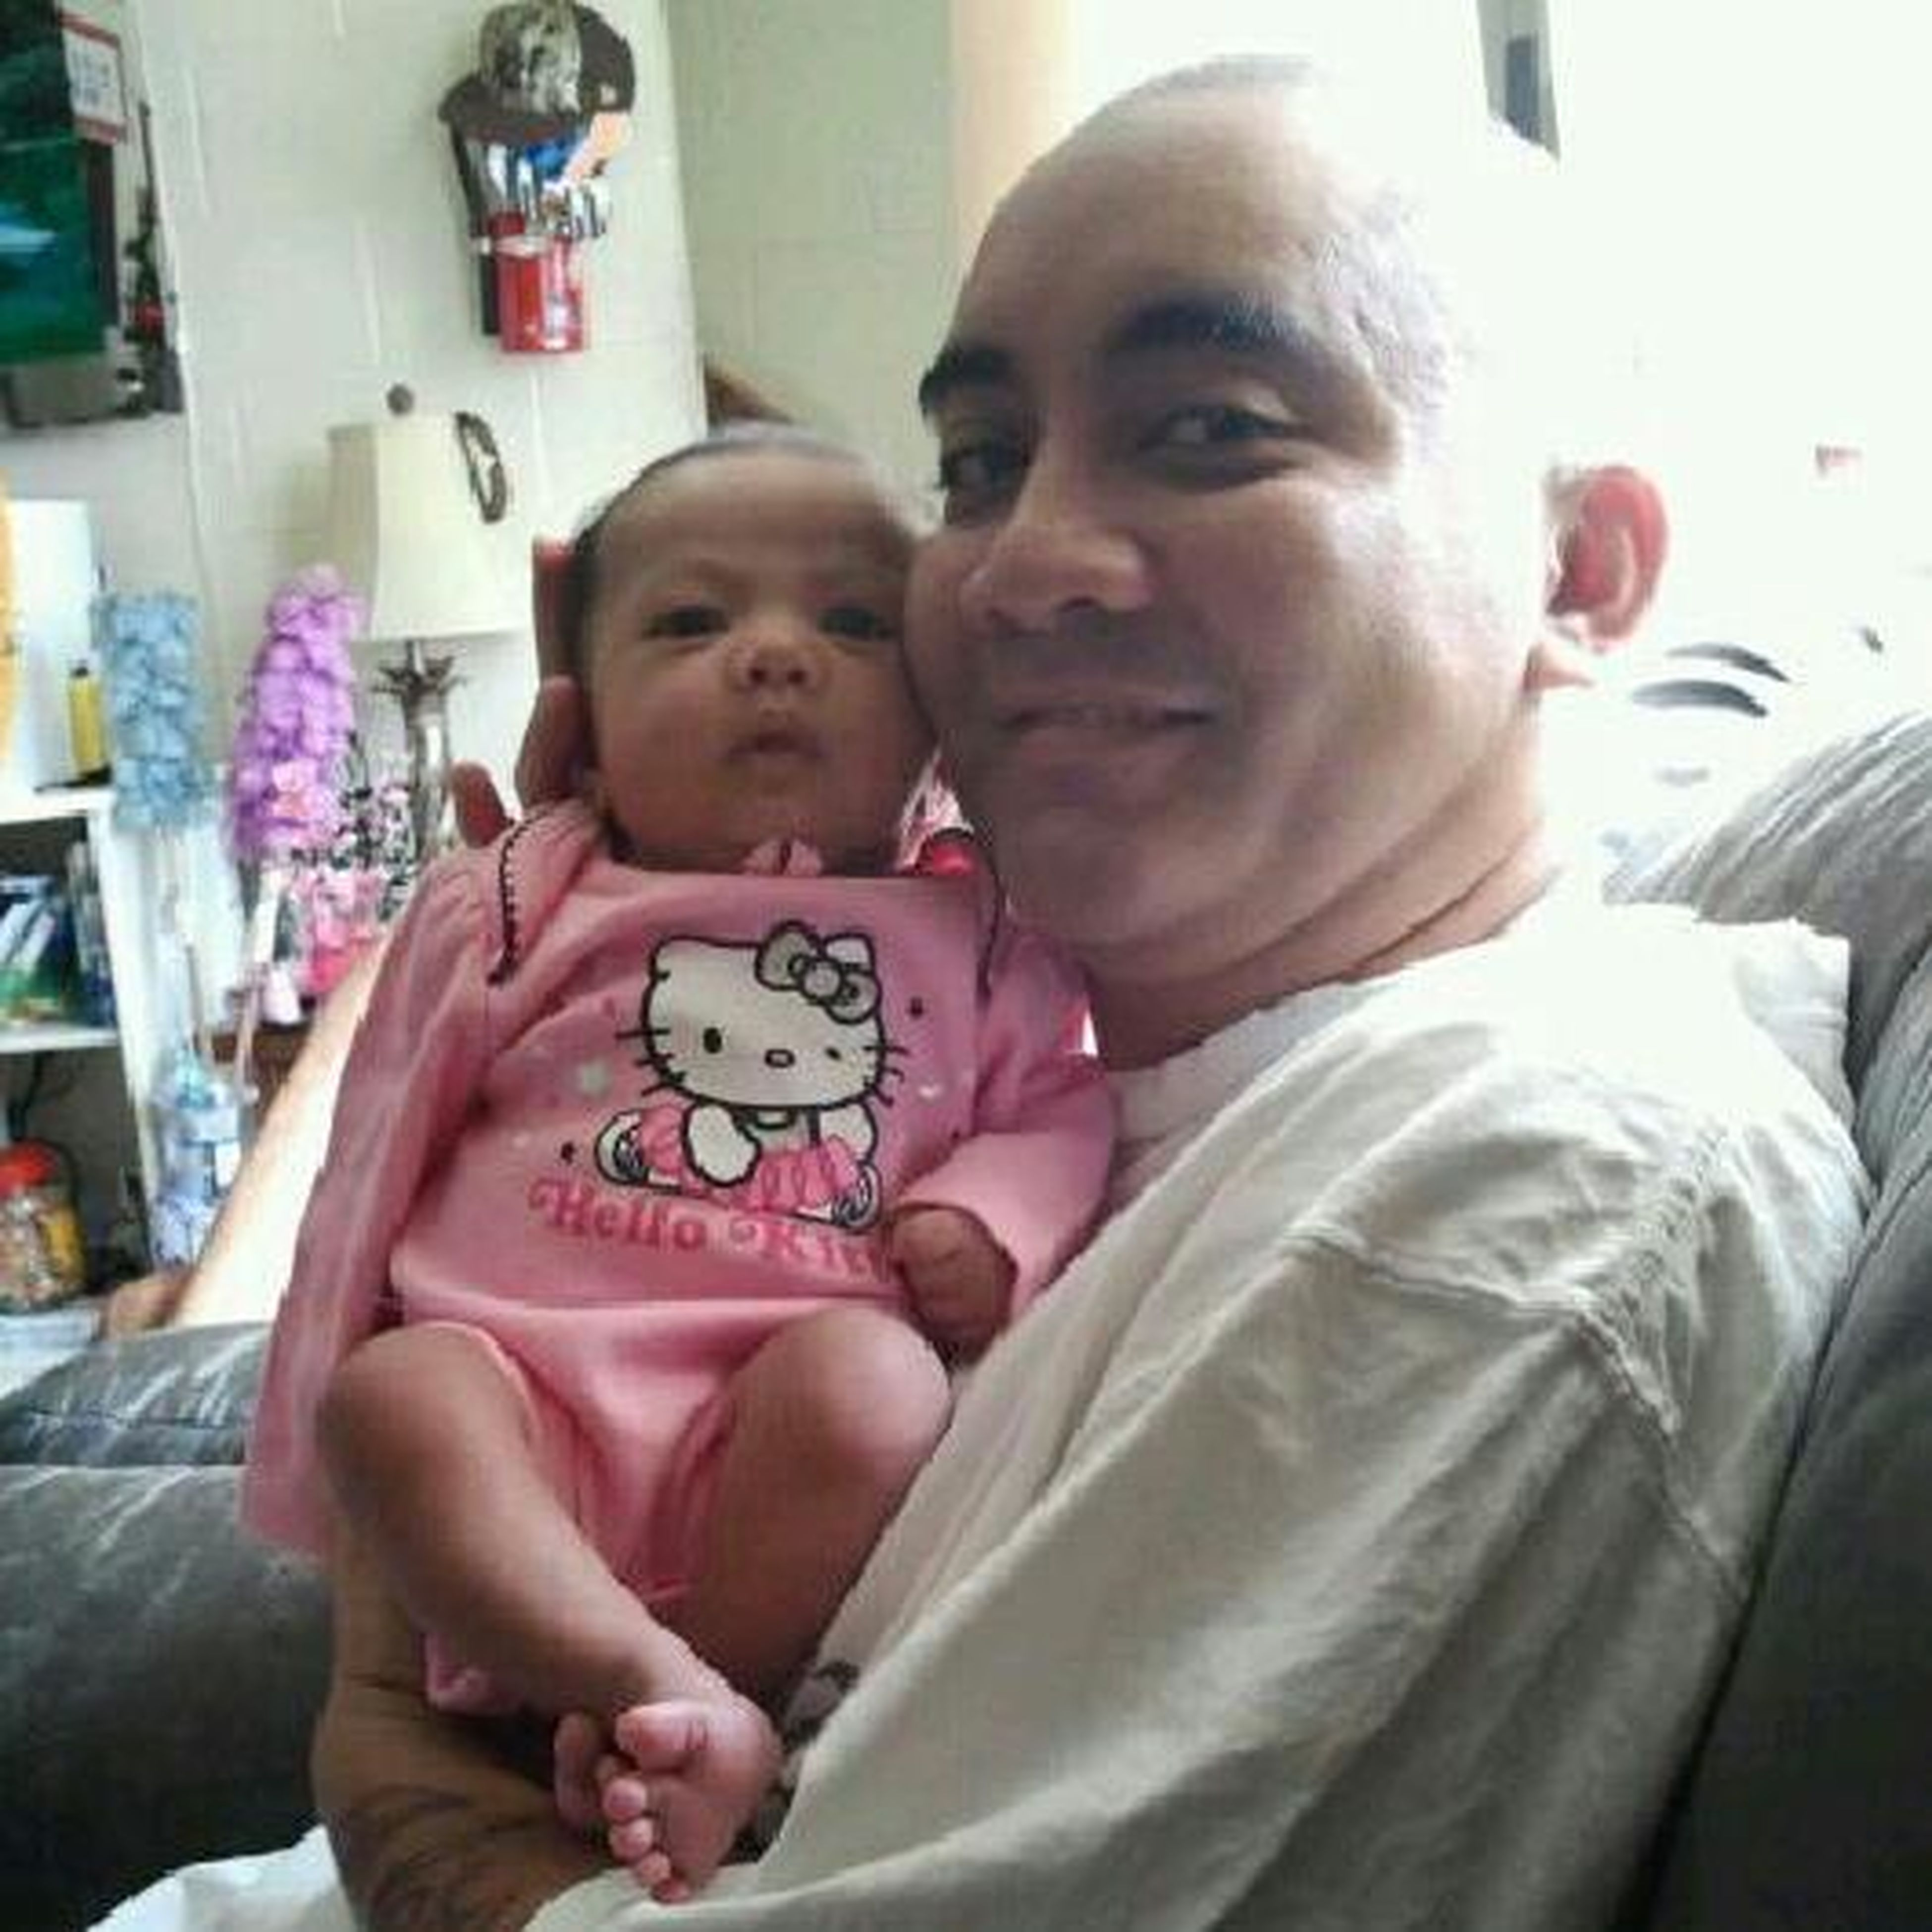 Me N My Niece Baby Alize Wen She Wuz 1 Month Old!!